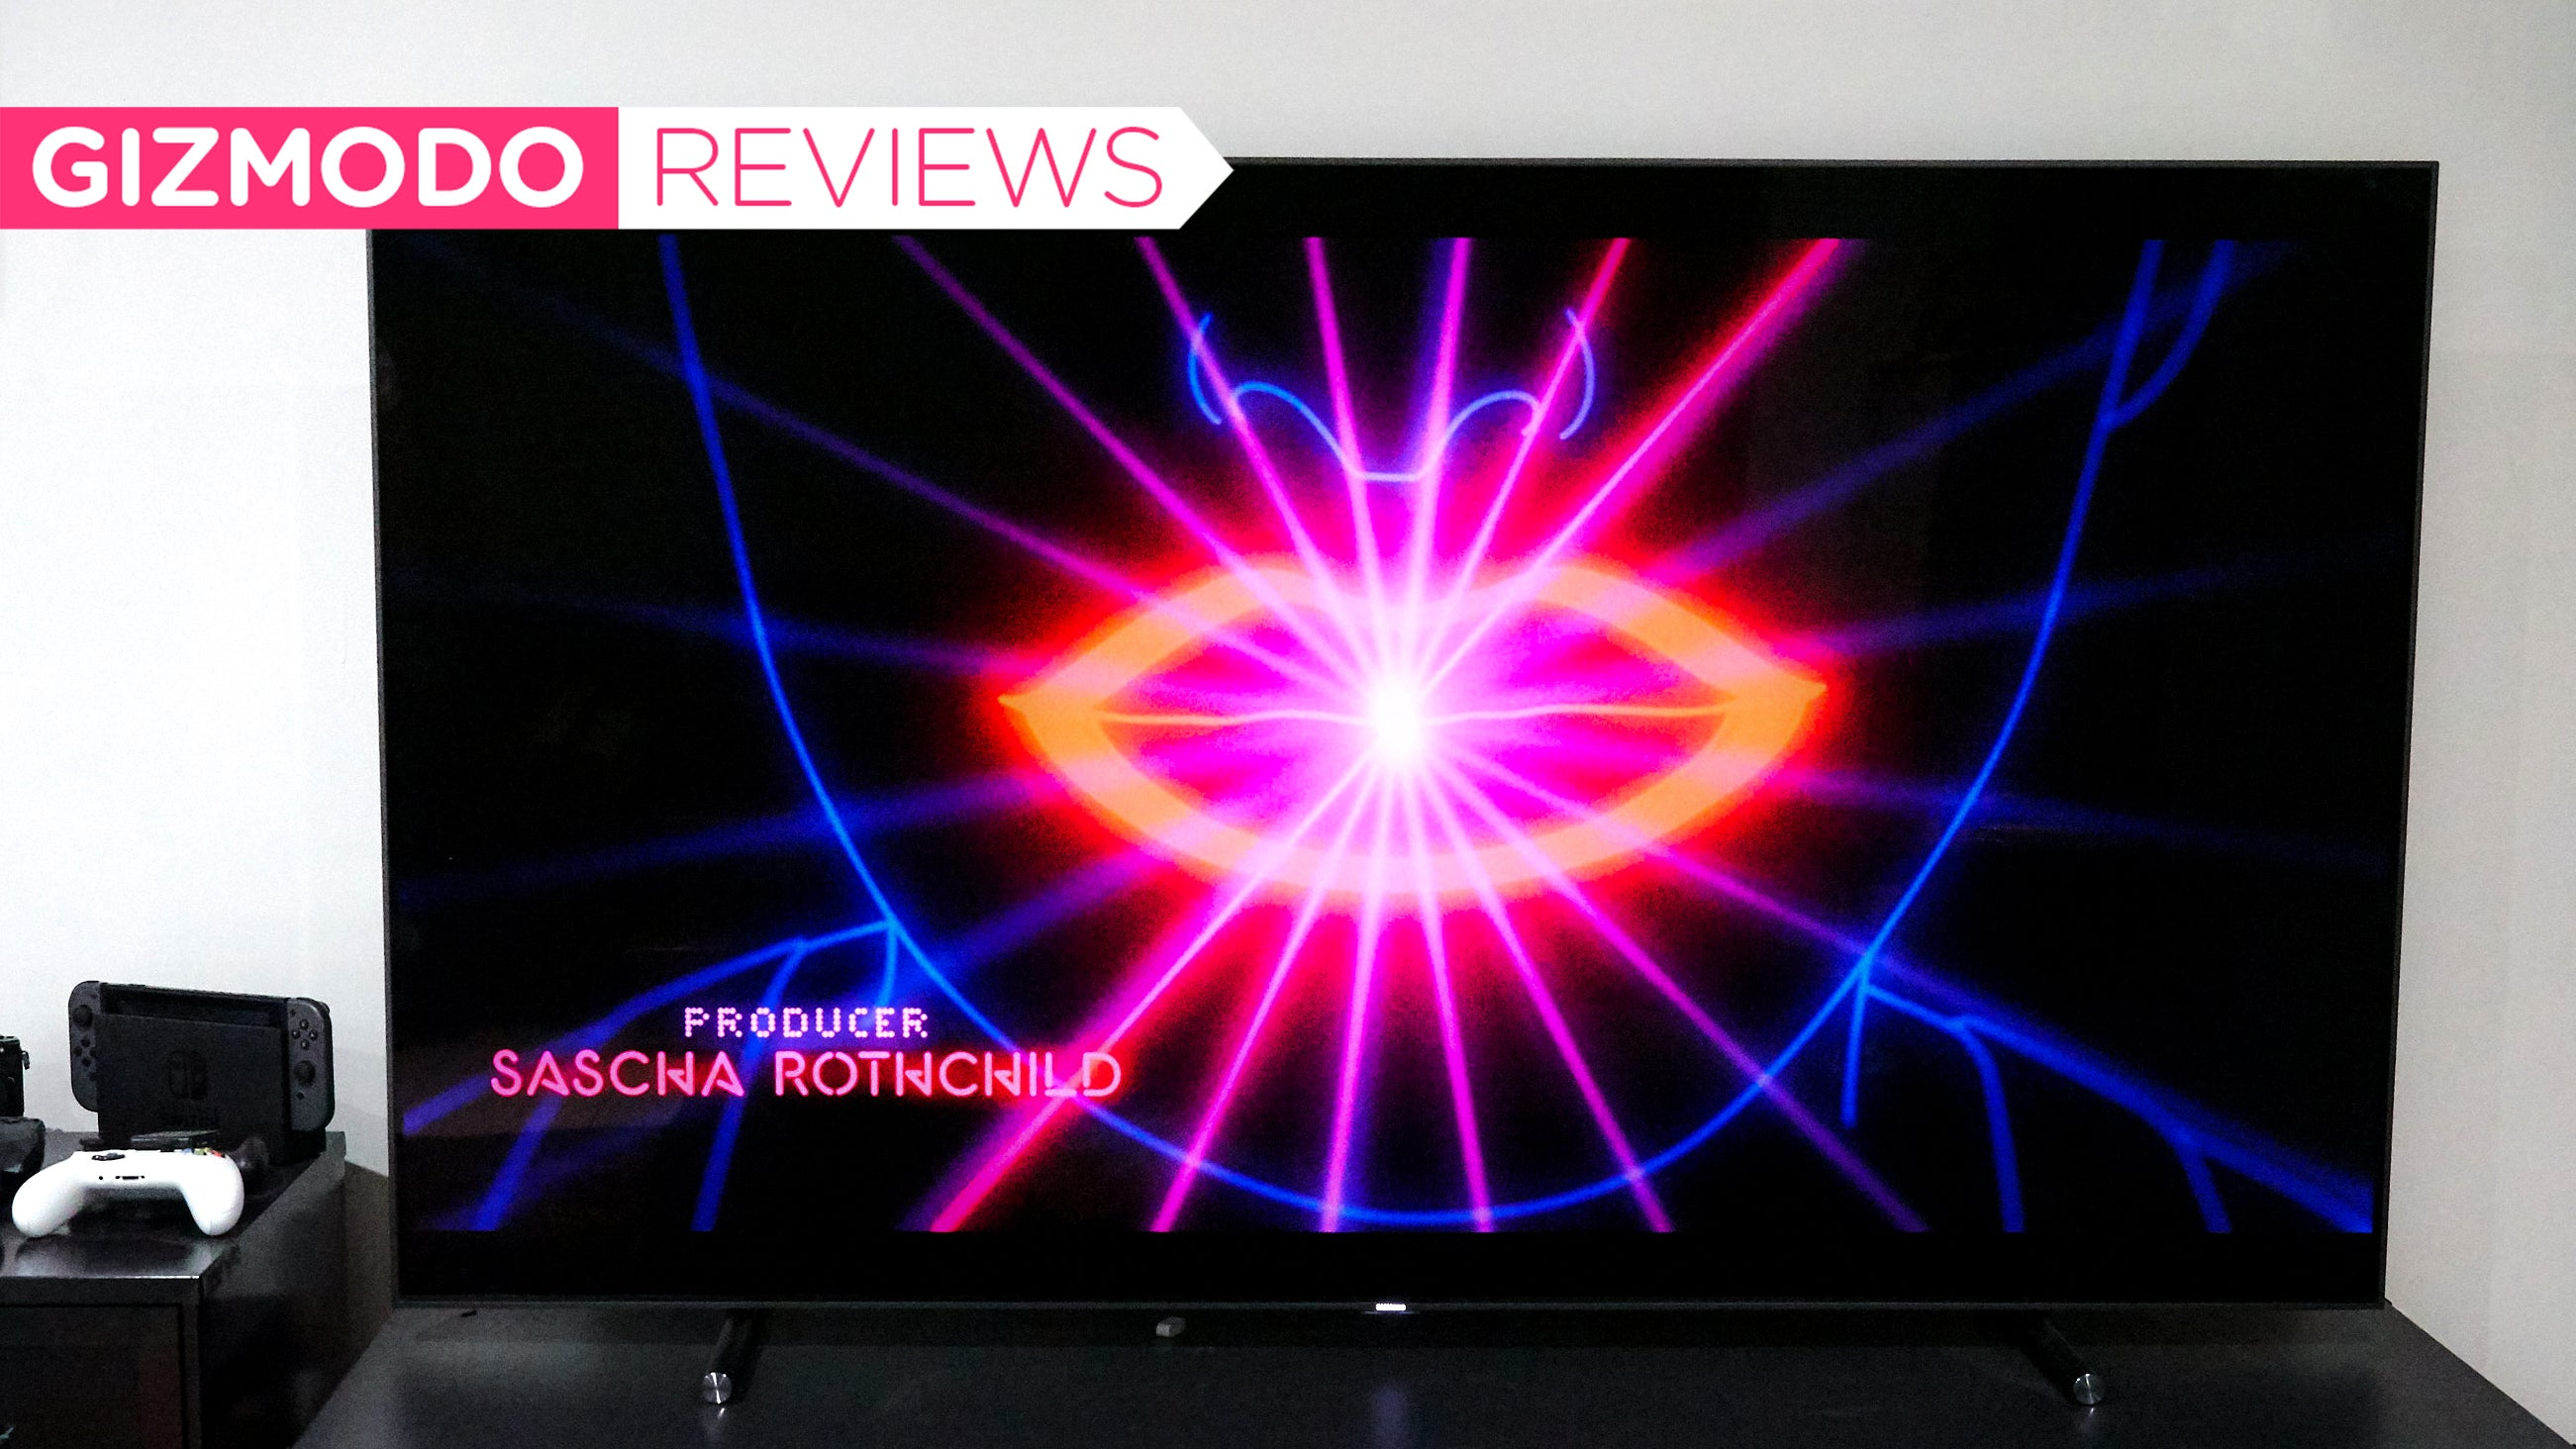 Samsung Q9 QLED TV: The Gizmodo Review